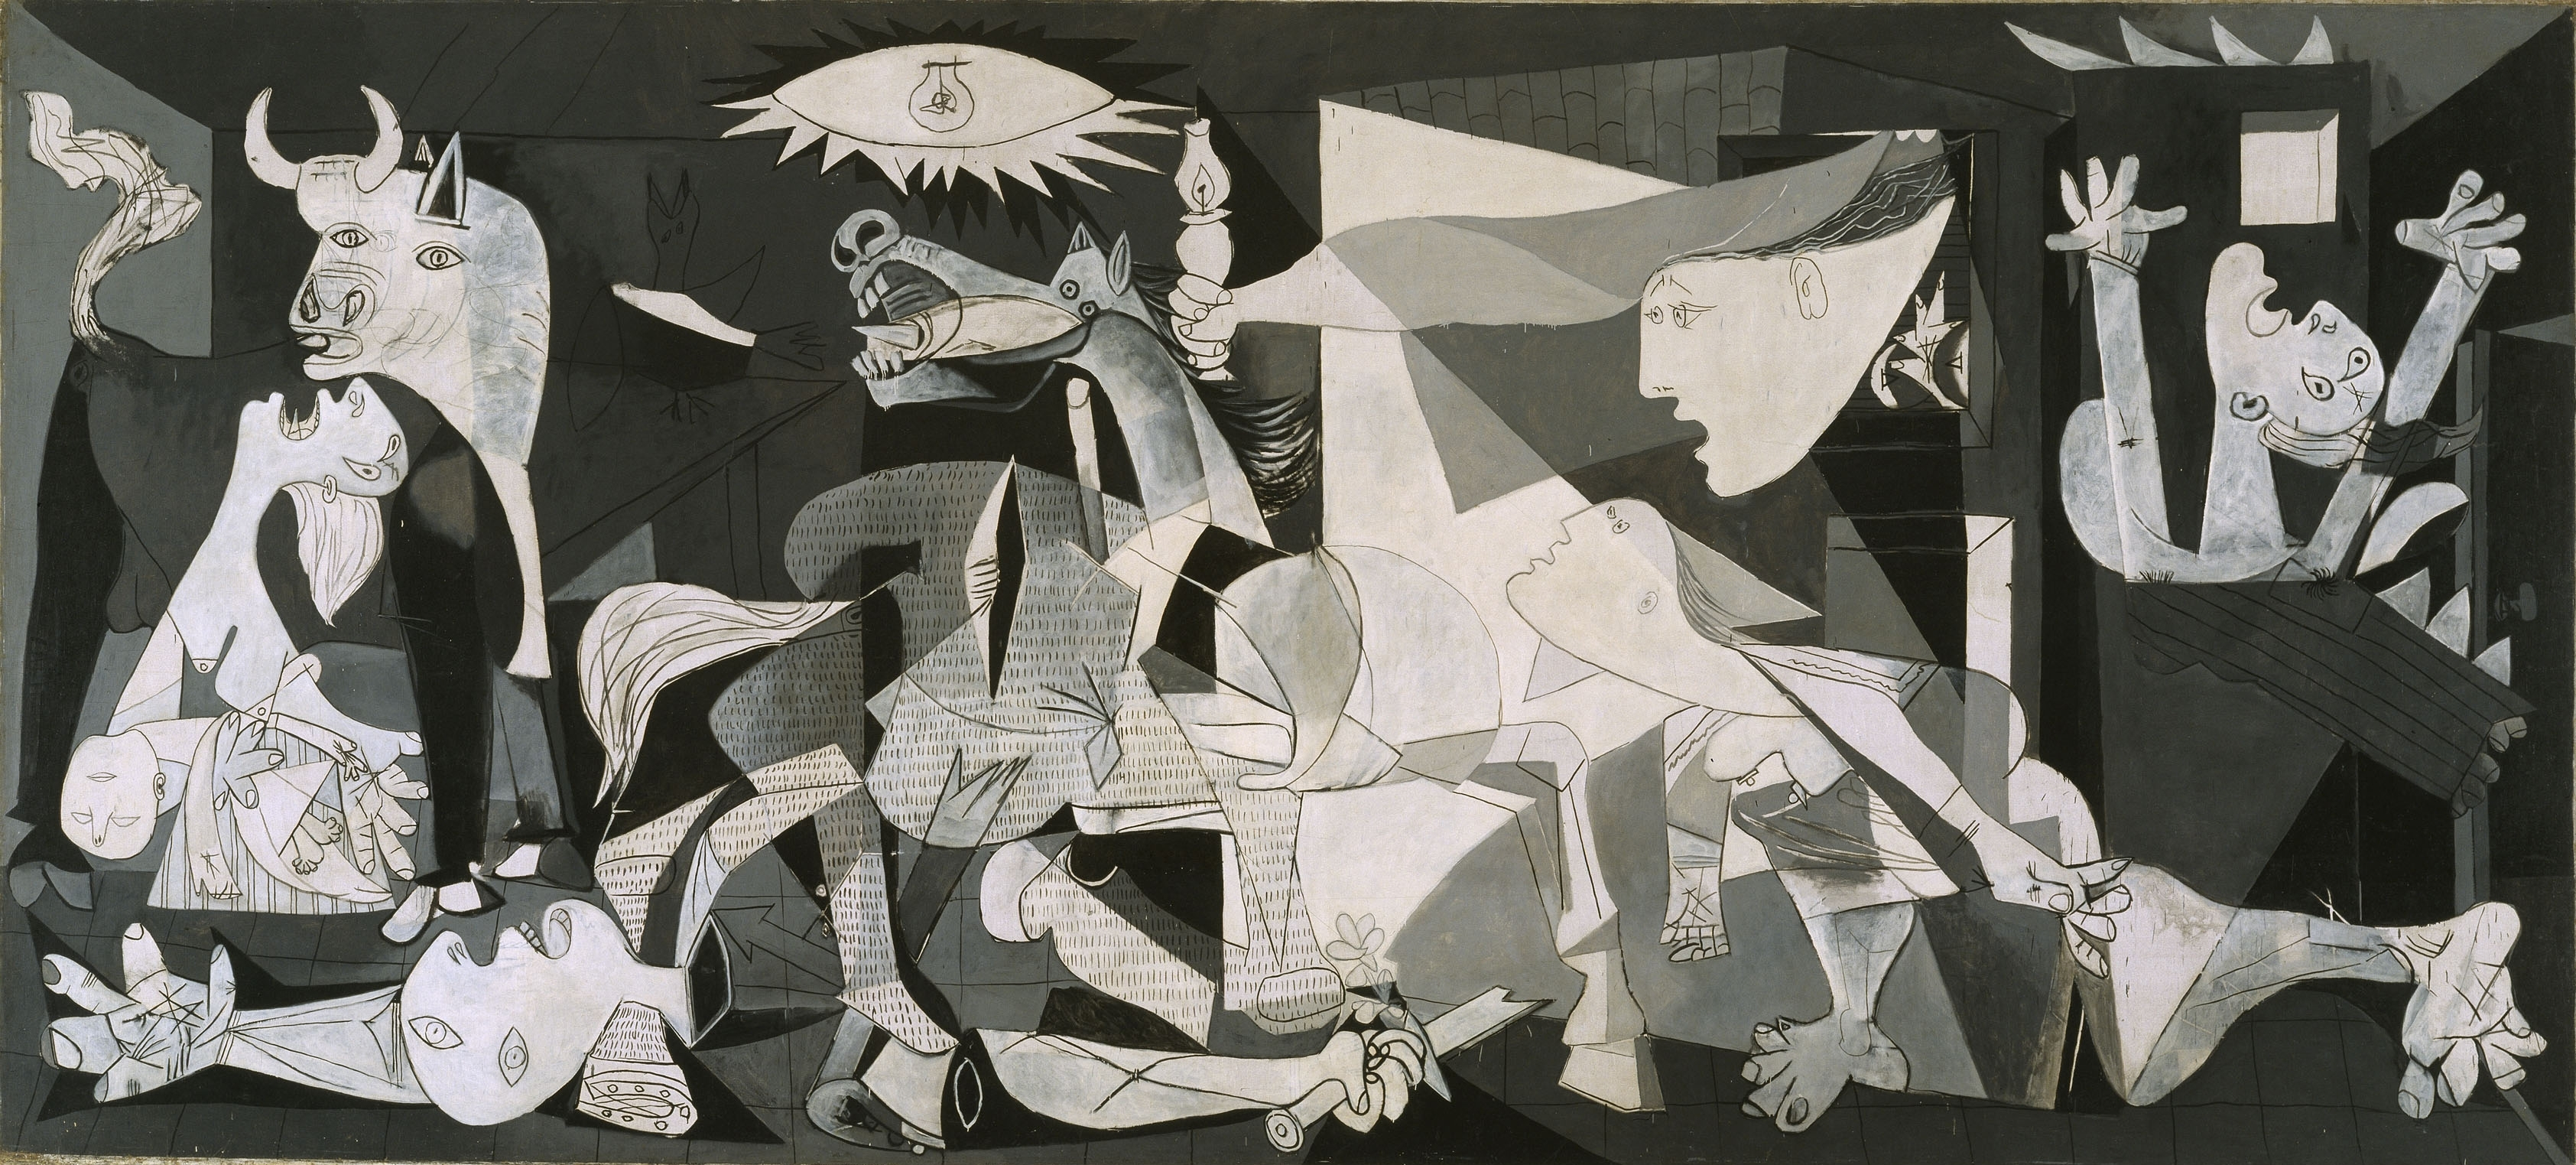 Wallpapers Download 3369x1523 pablo picasso guernica Wallpaper 3369x1523